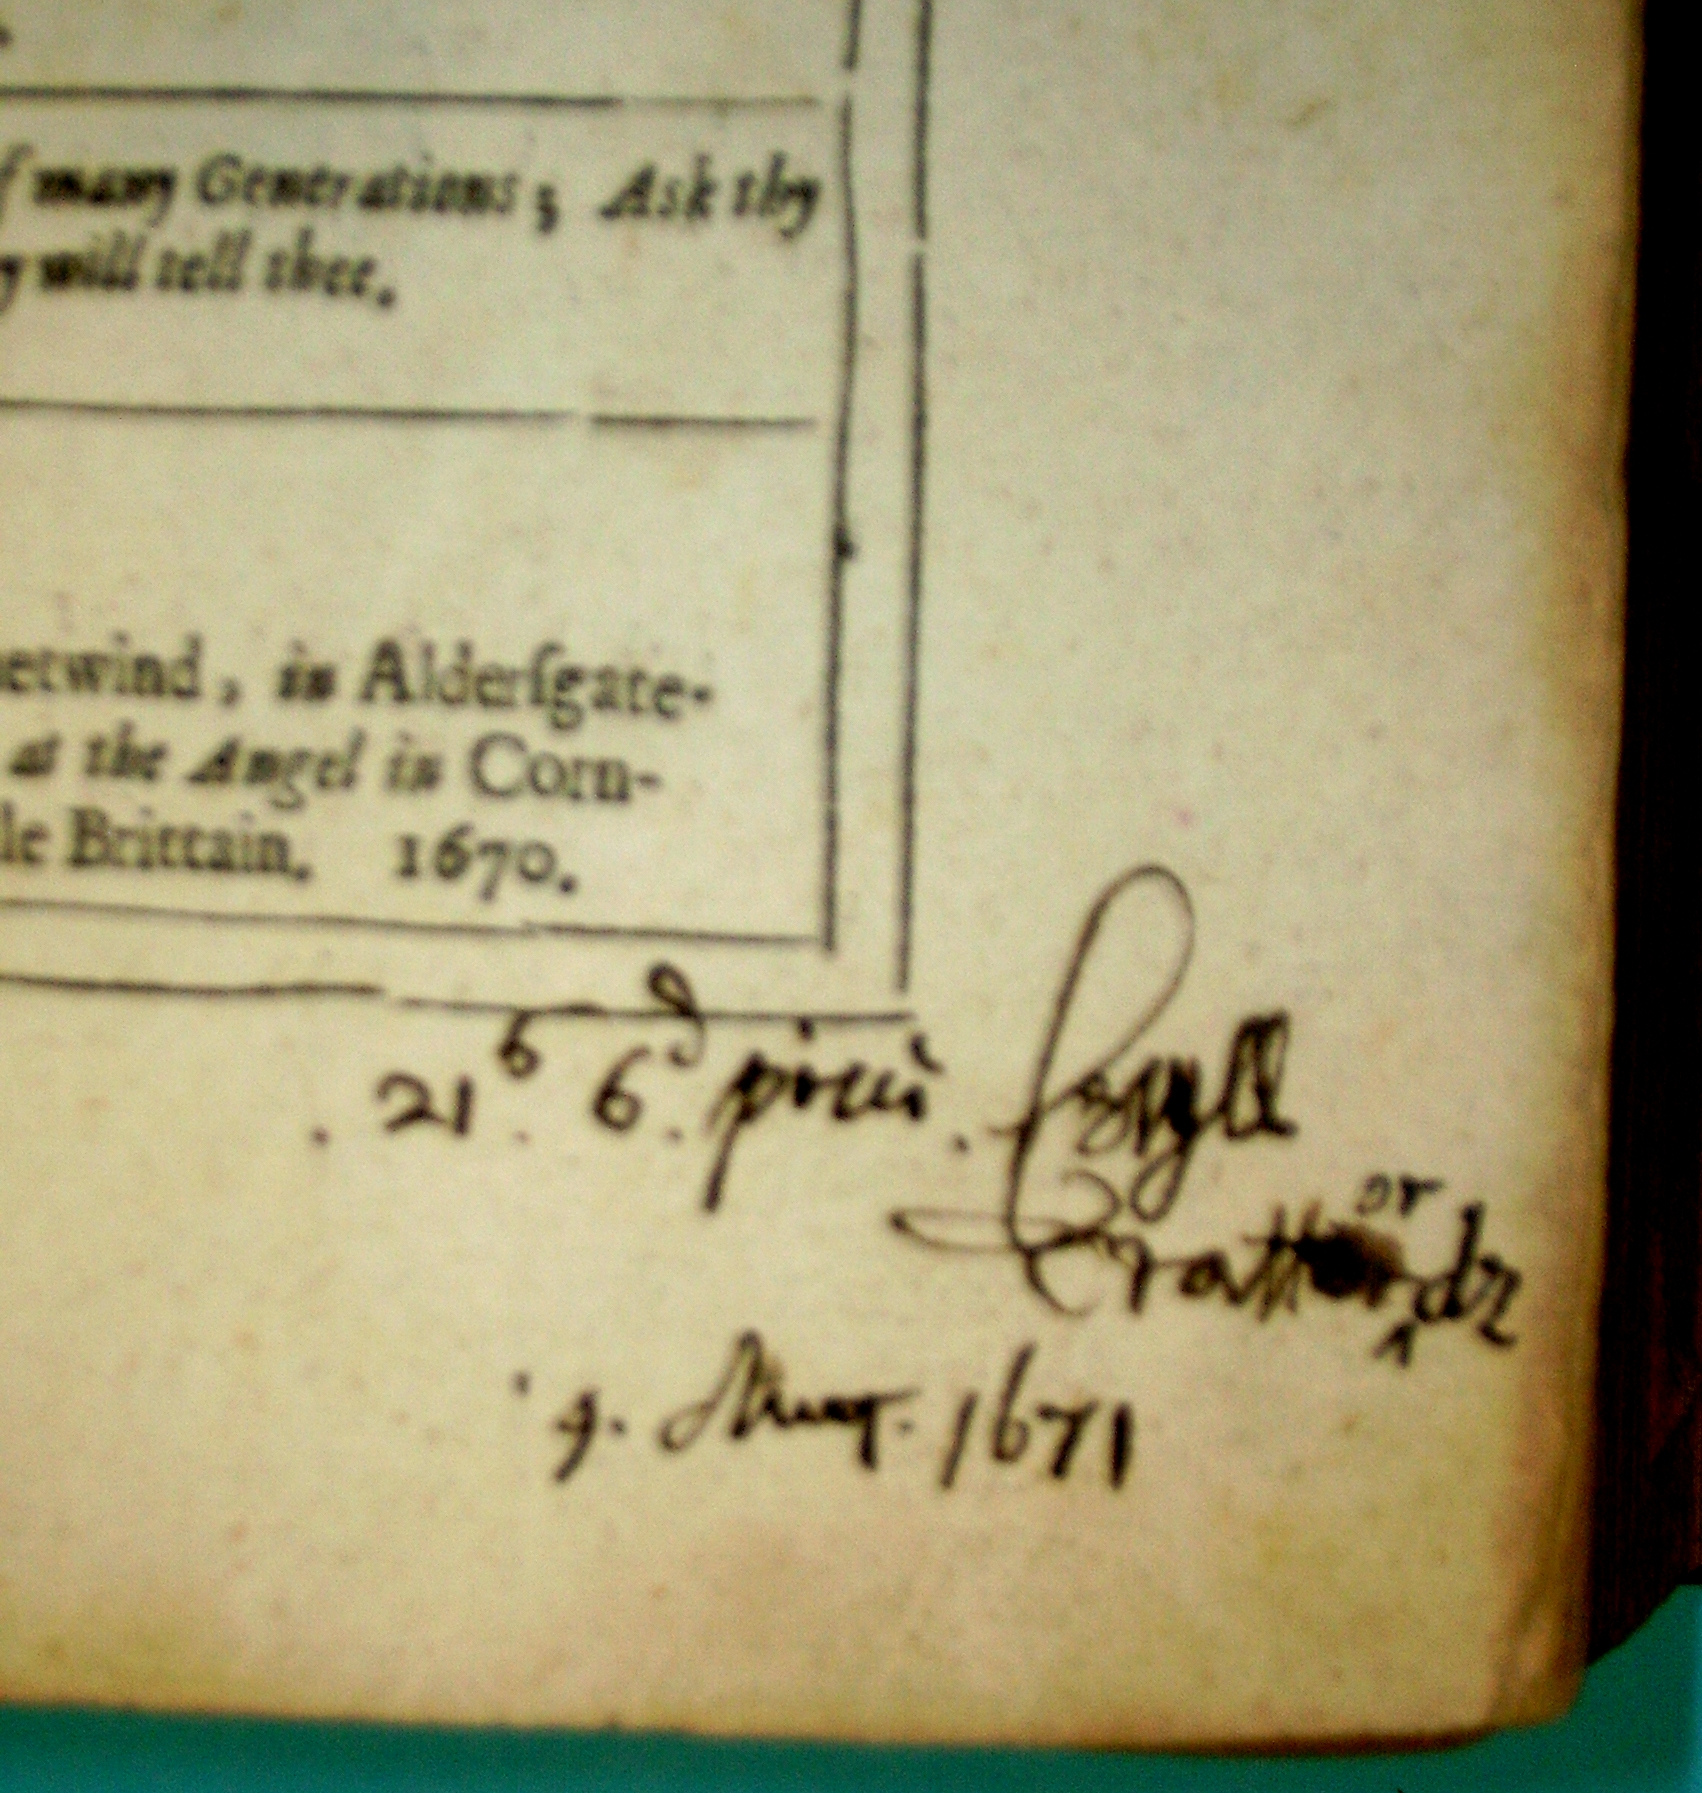 Annotations from 1671 on Prynne title page